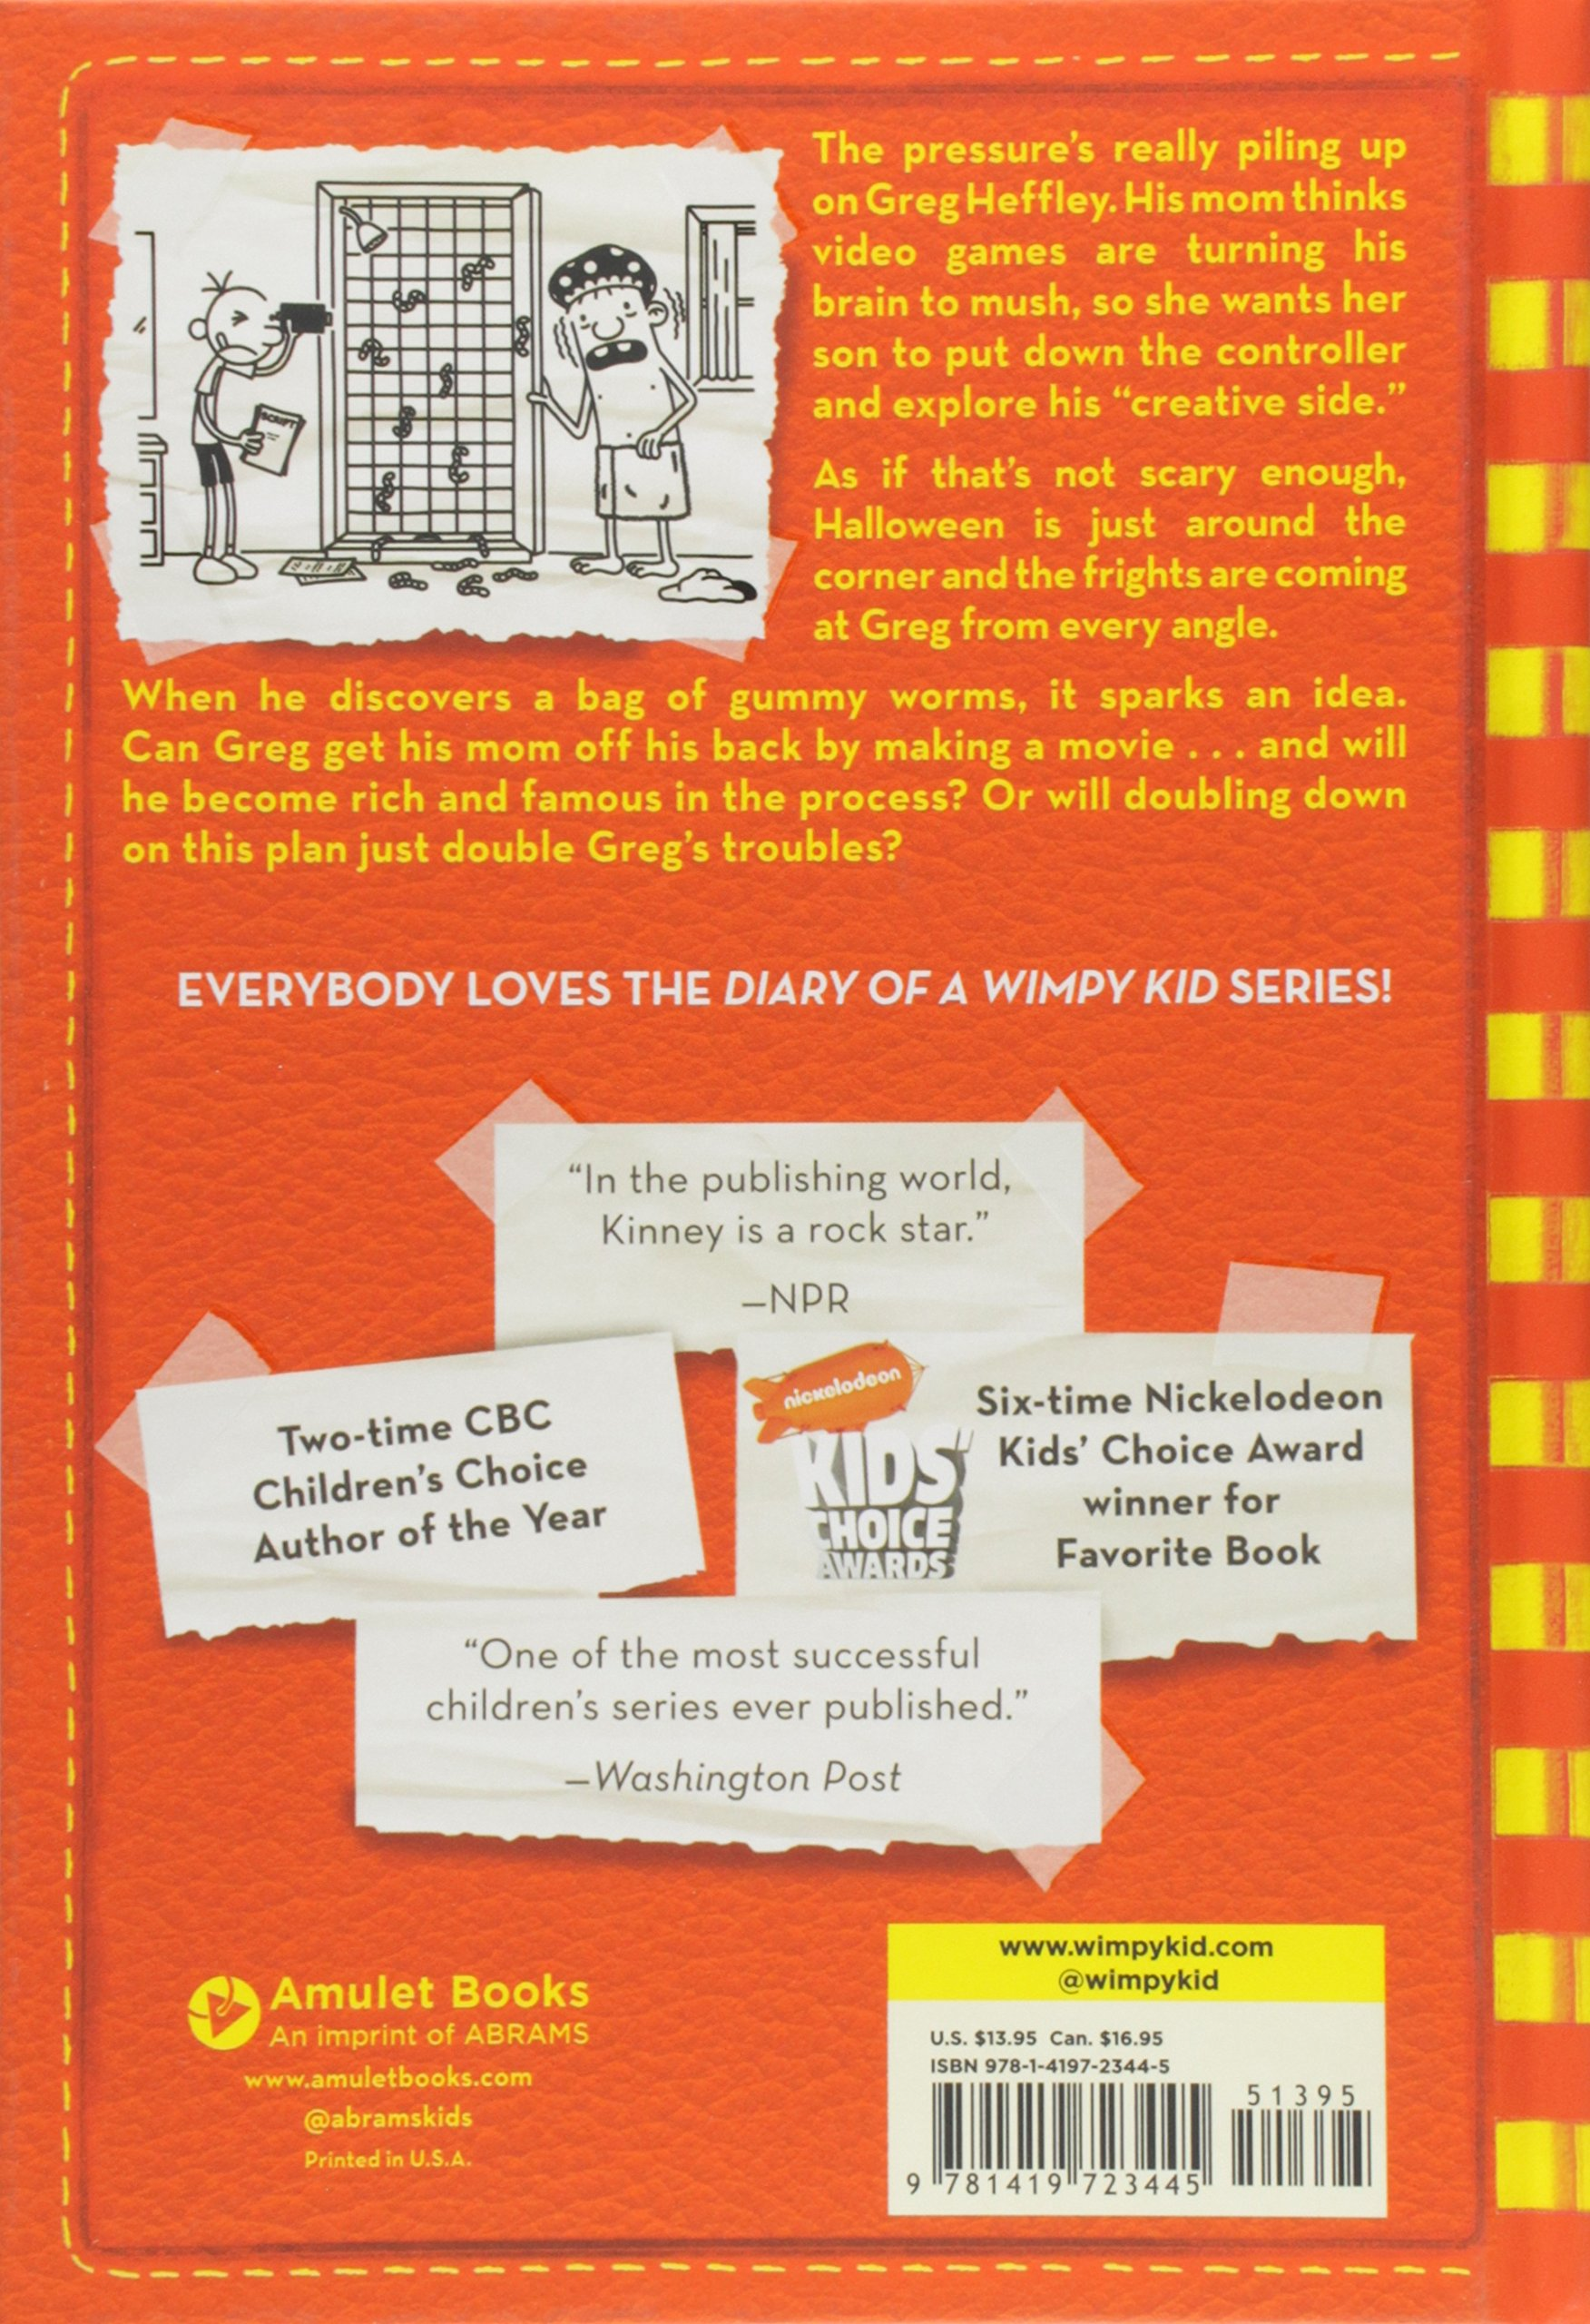 Image book 11 back coverg diary of a wimpy kid wiki book 11 back coverg solutioingenieria